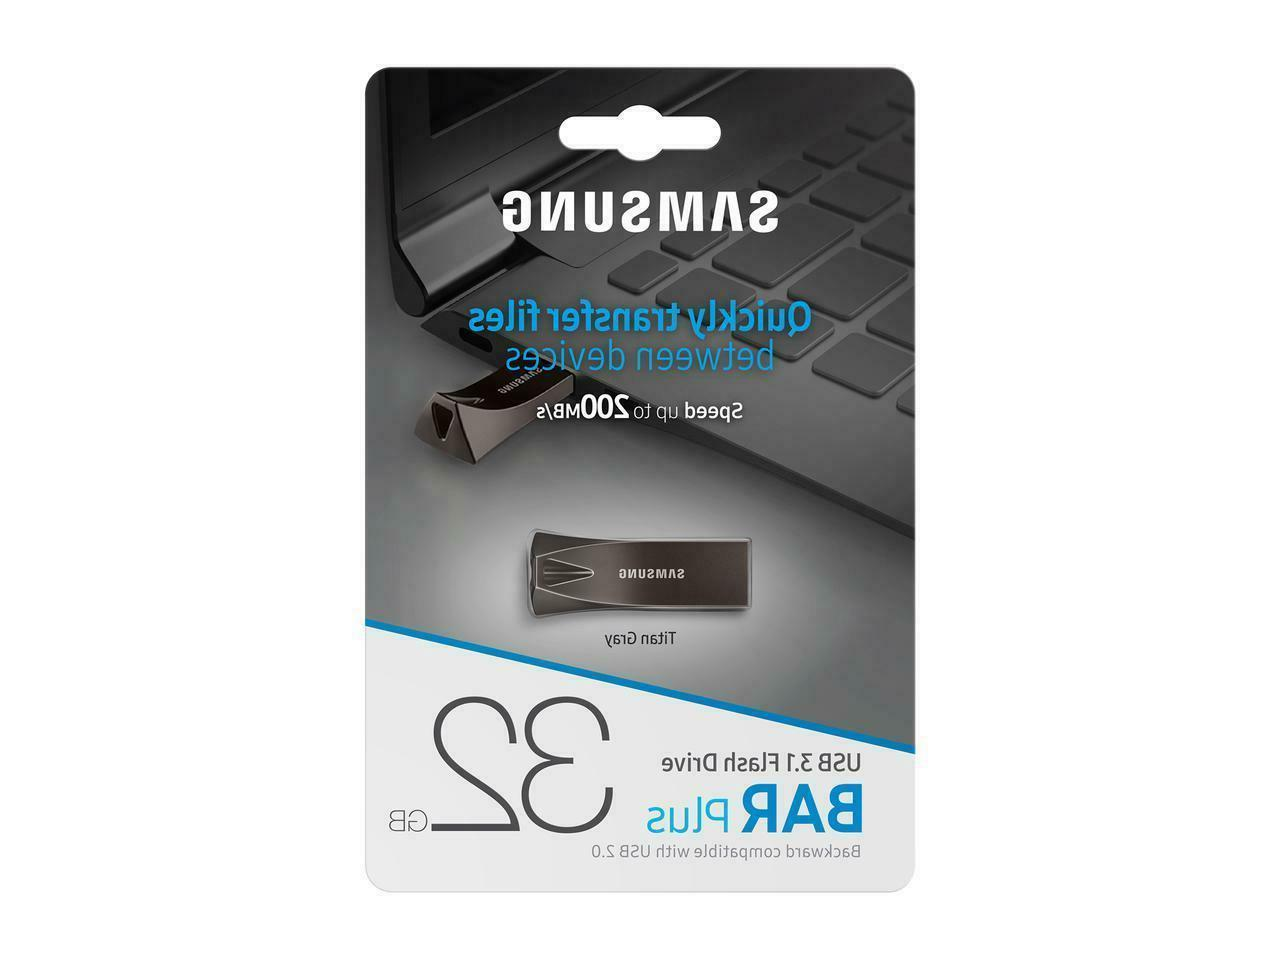 New 32GB 3.1 Flash Drive 200MB/s Genuine USA Seller